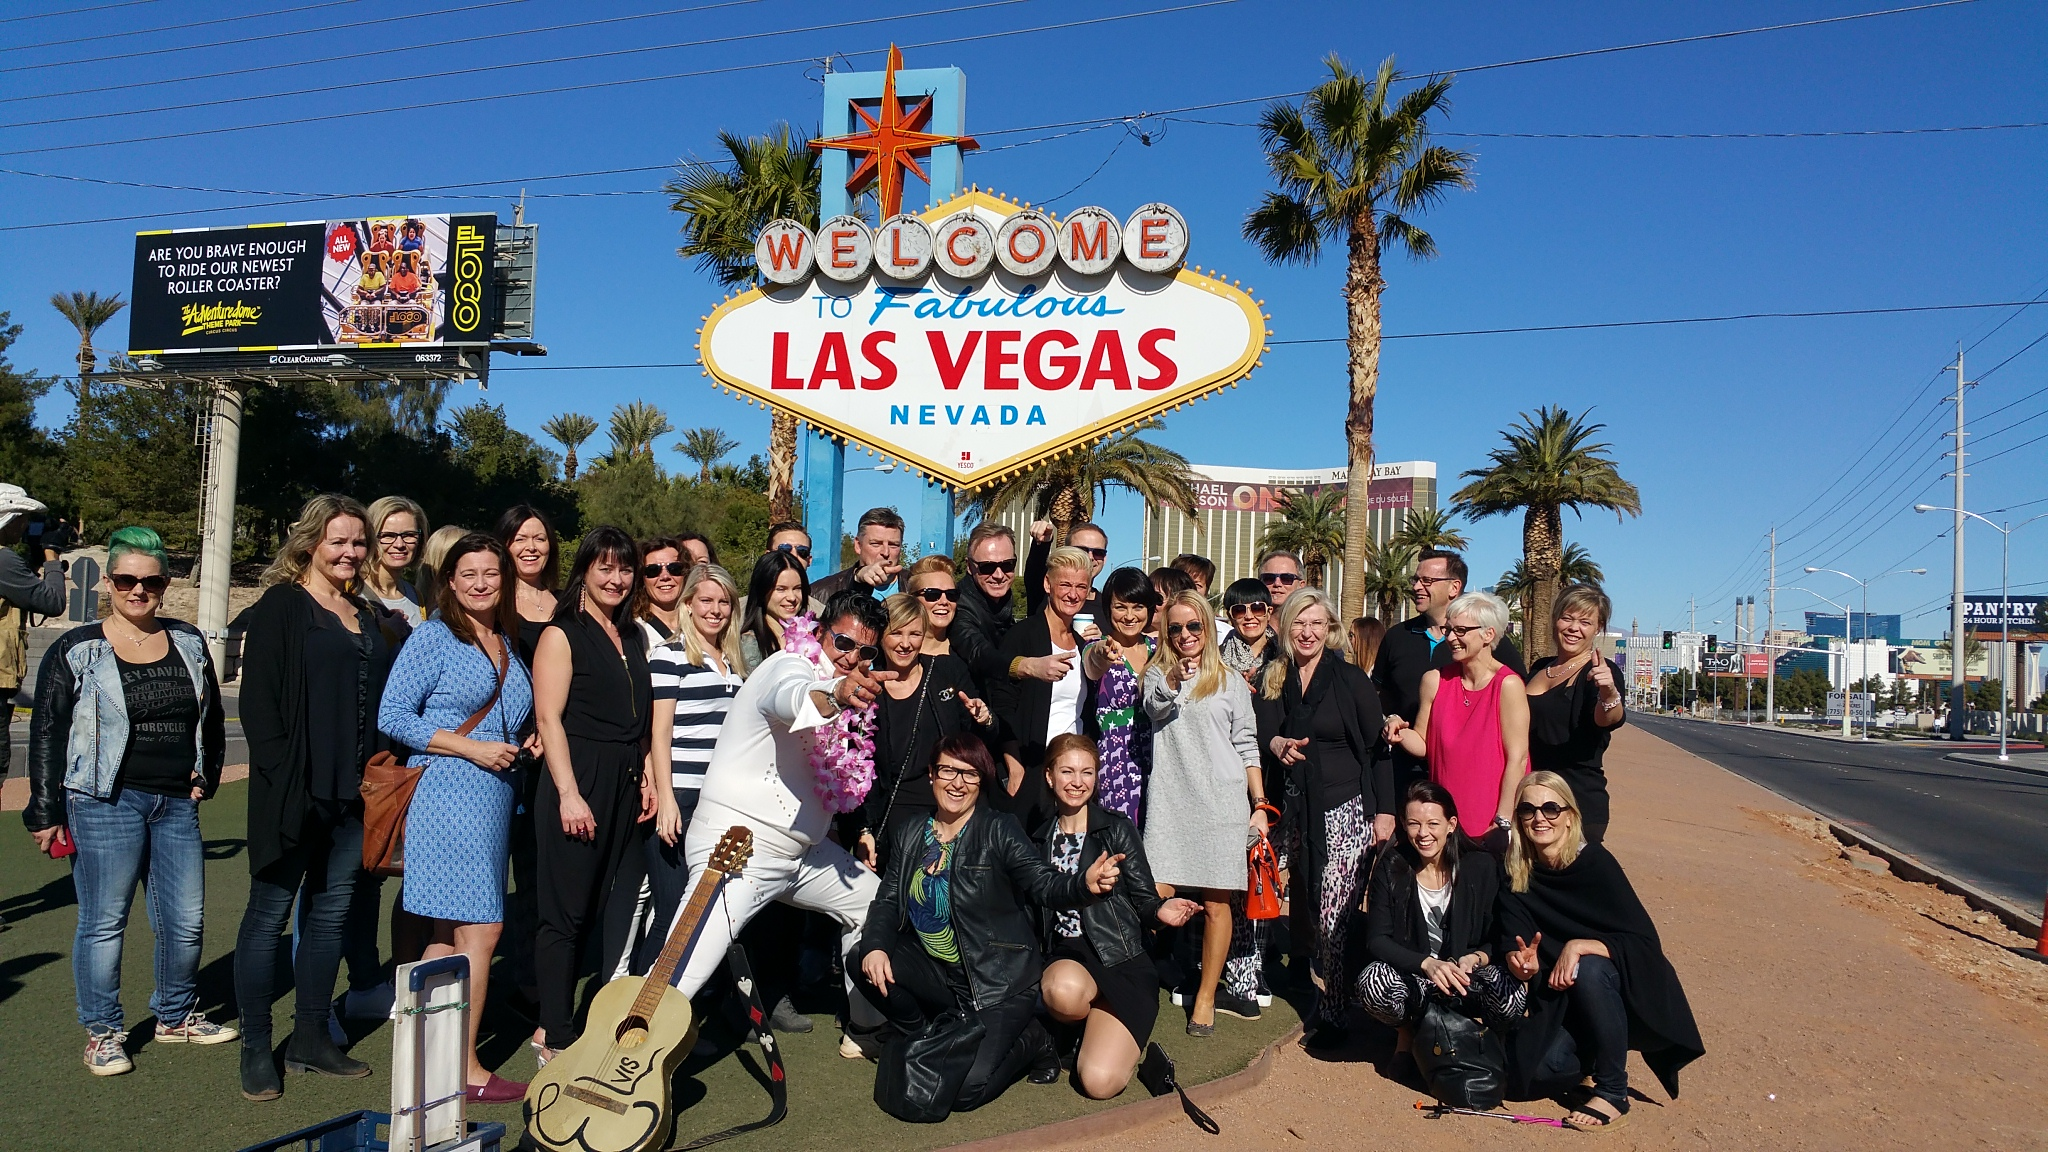 Las Vegas with Elvis Photo Op